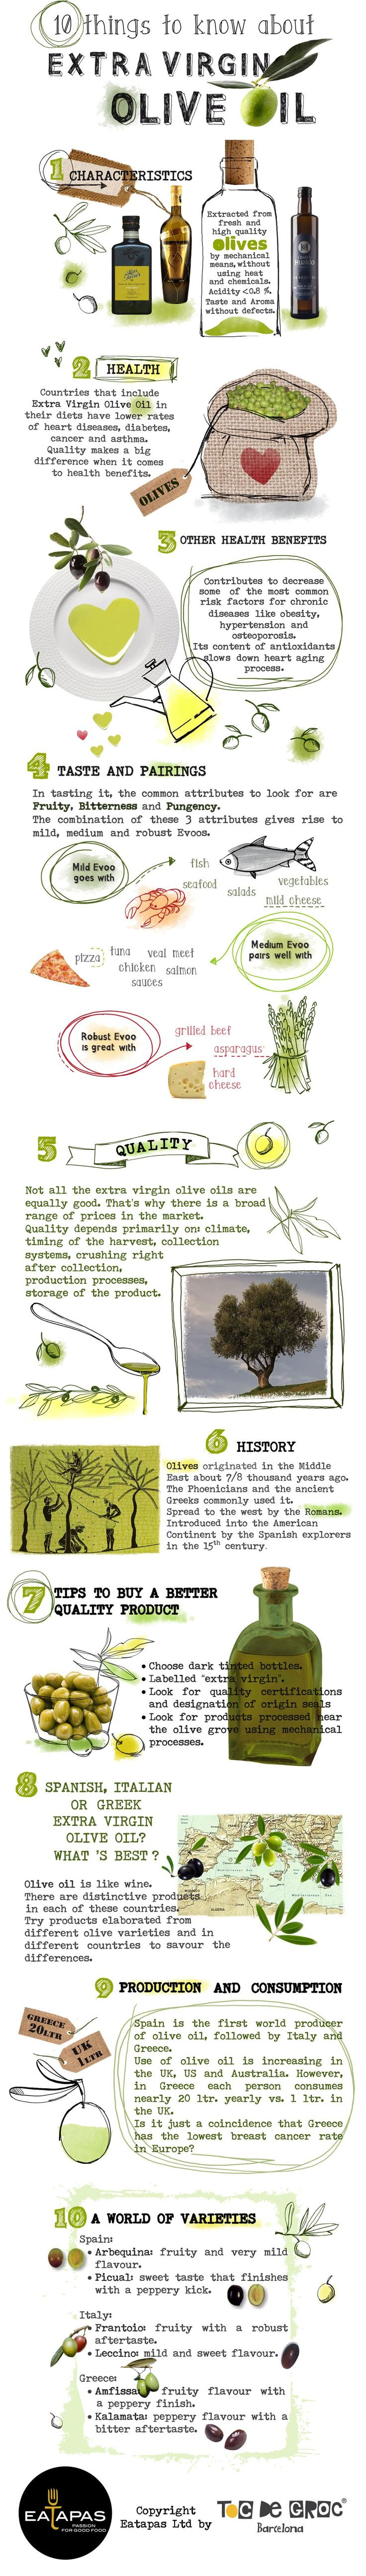 10 Surprising facts about Virgin Olive Oil